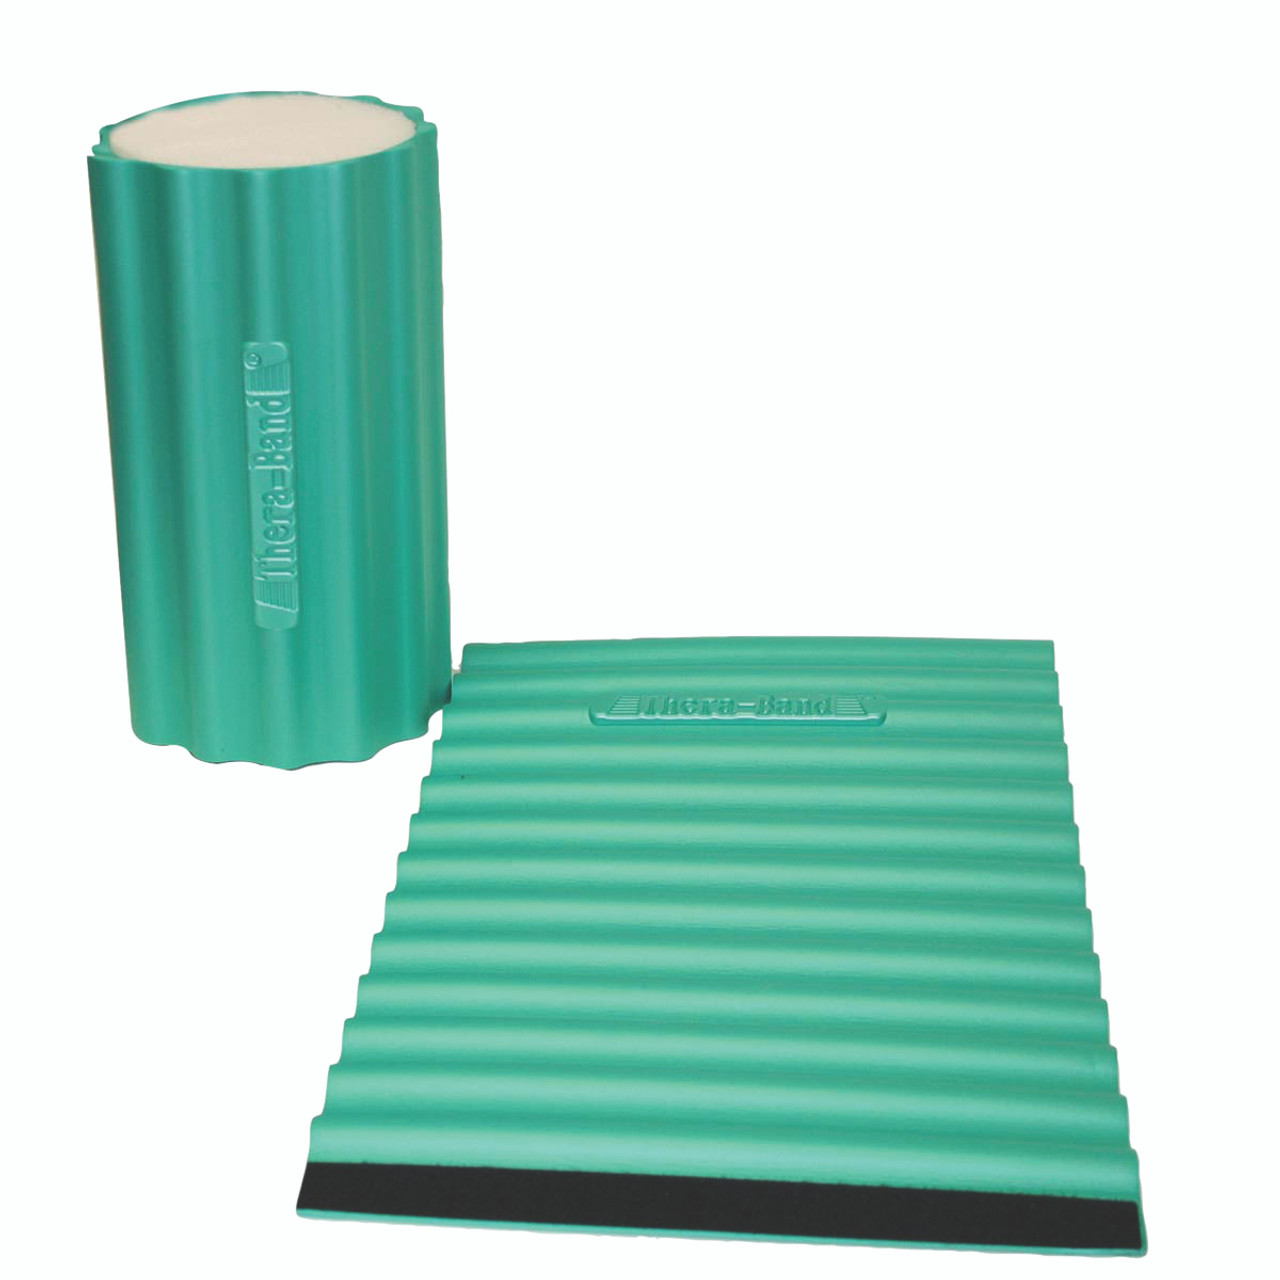 TheraBand¨ foam roller wraps+, green